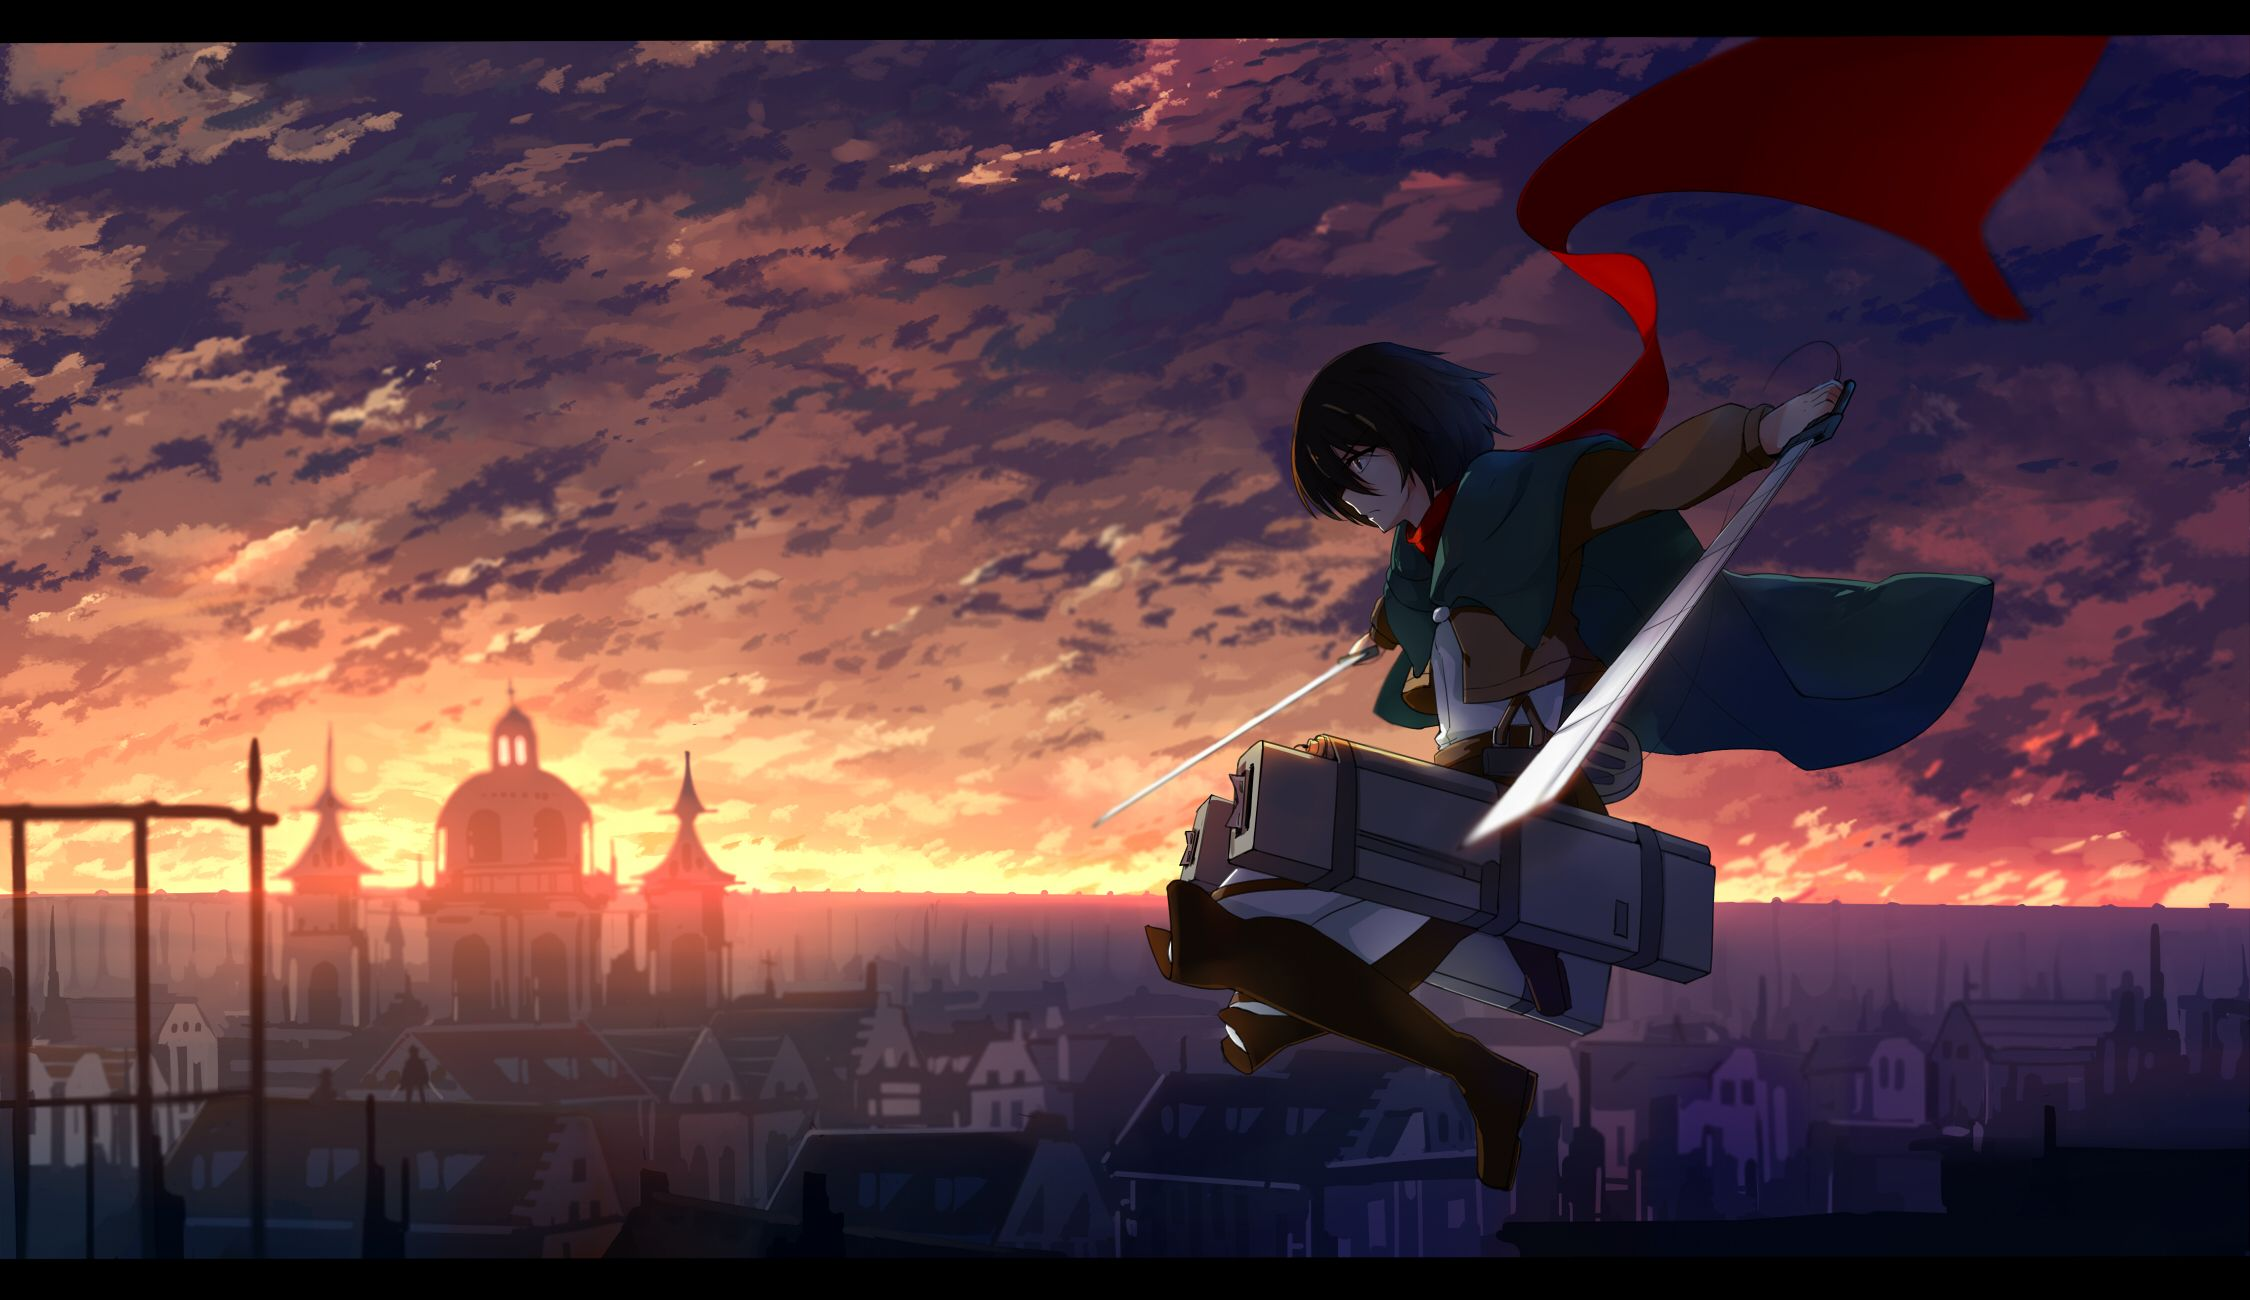 Attack On Titan Wallpapers Anime Wallpaper 1920x1080 Attack On Titan Art Anime Wallpaper